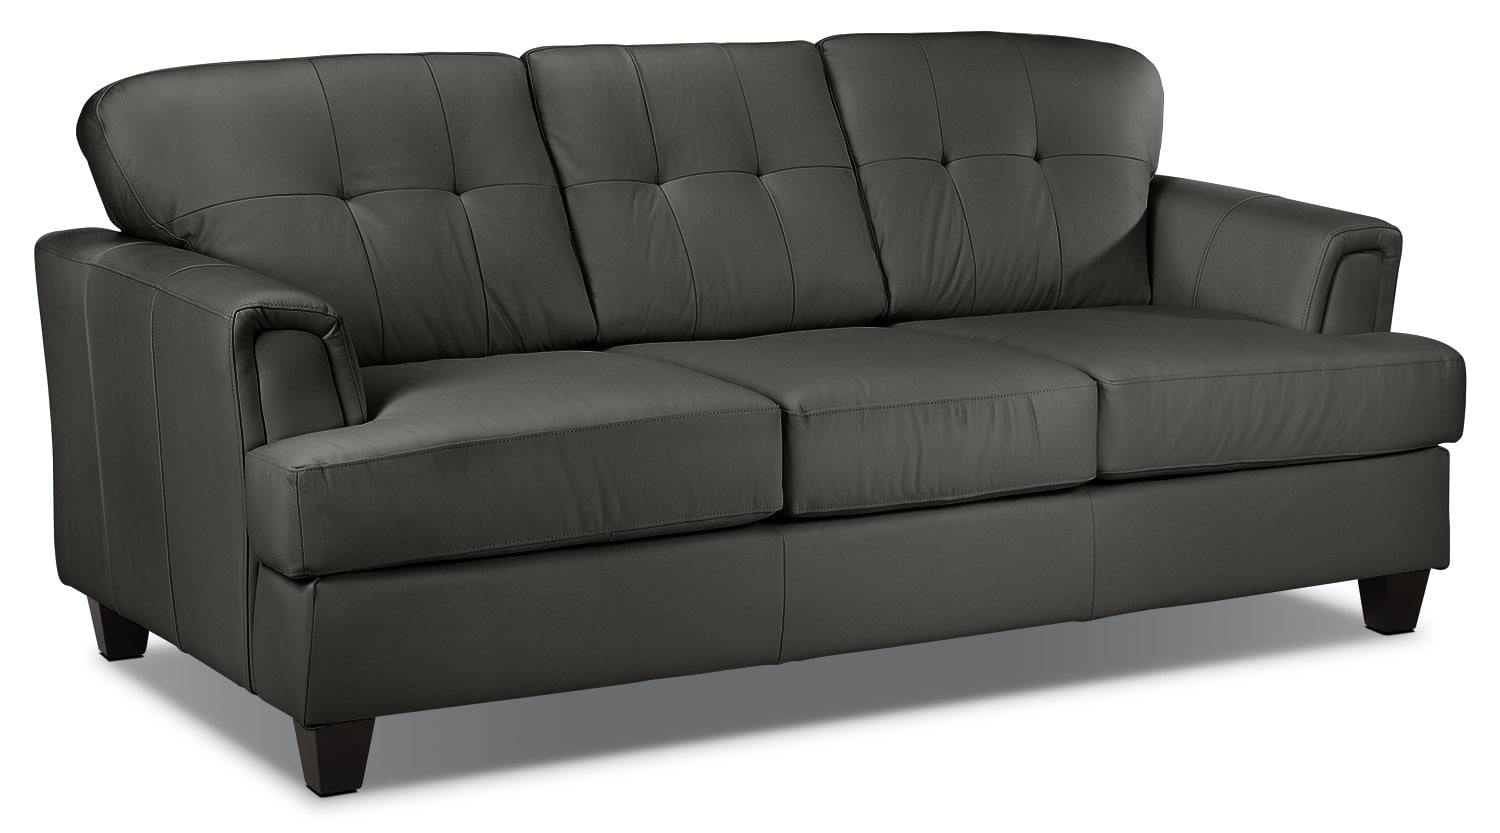 Spencer Sofa - Smoke Grey